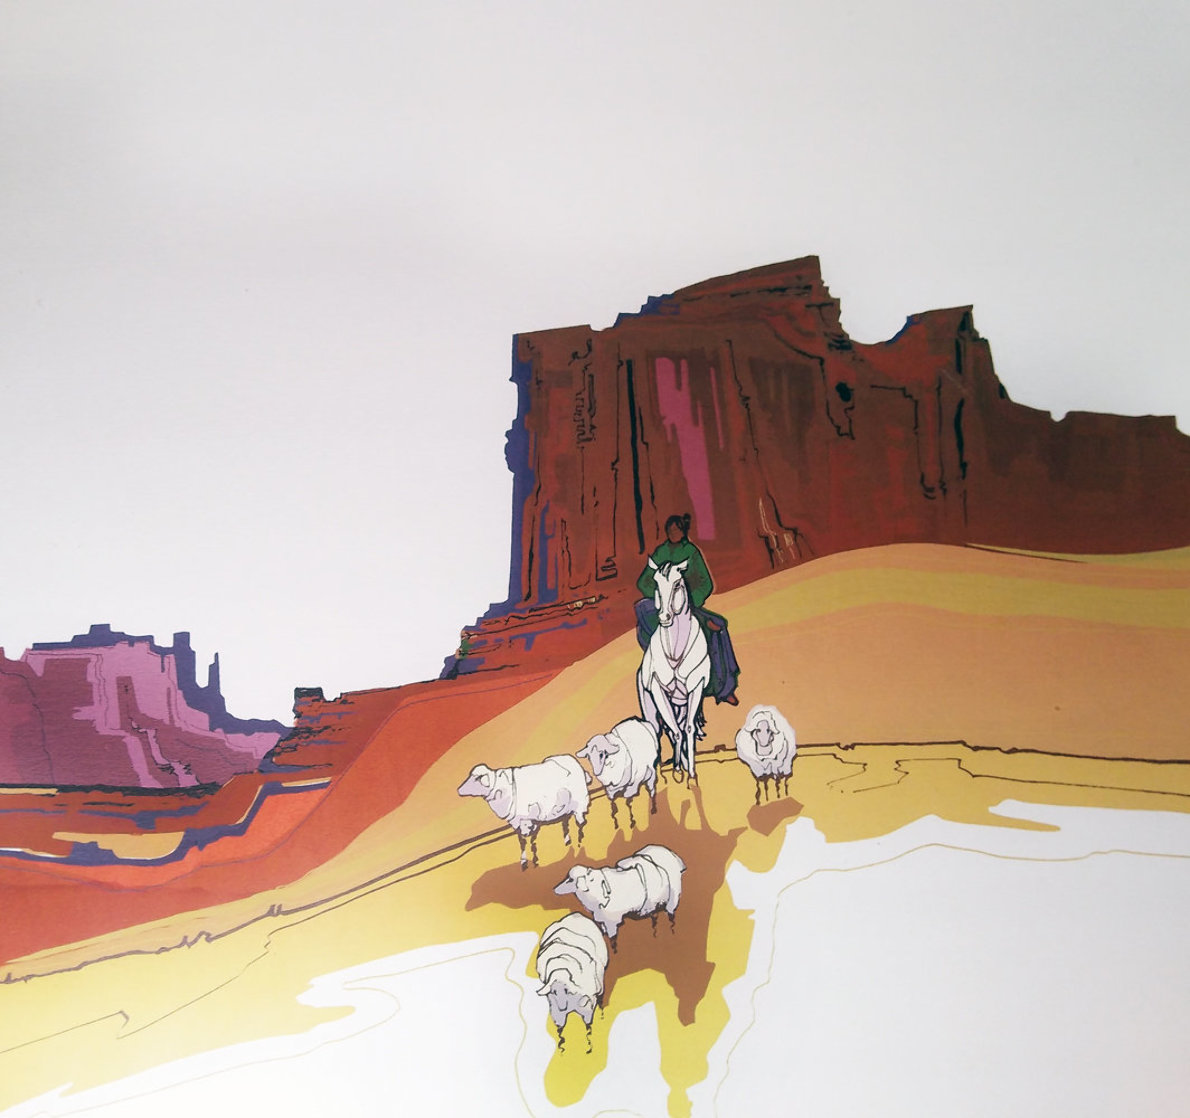 Painted Rock AP 1984 Limited Edition Print by Michael Atkinson